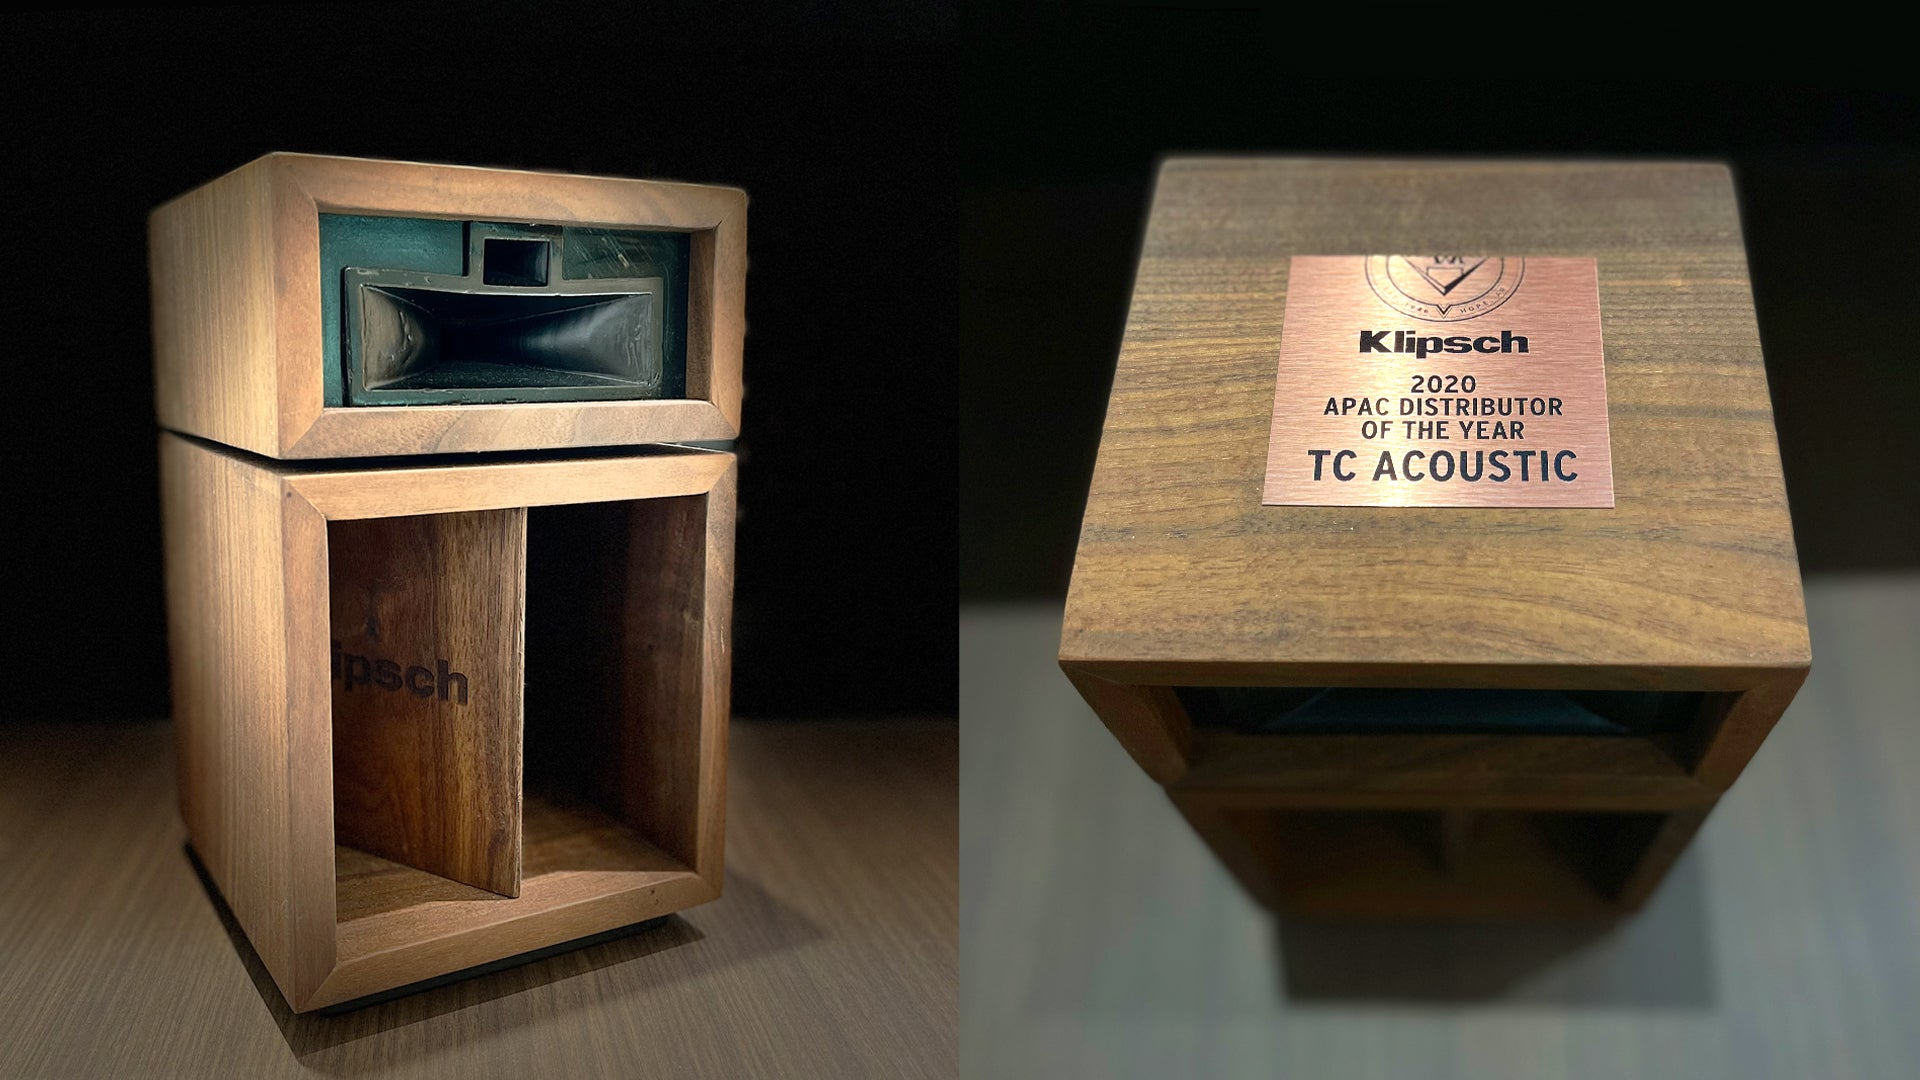 TC Acoustic was awarded Klipsch Top Asia-Pacific Distributor Award